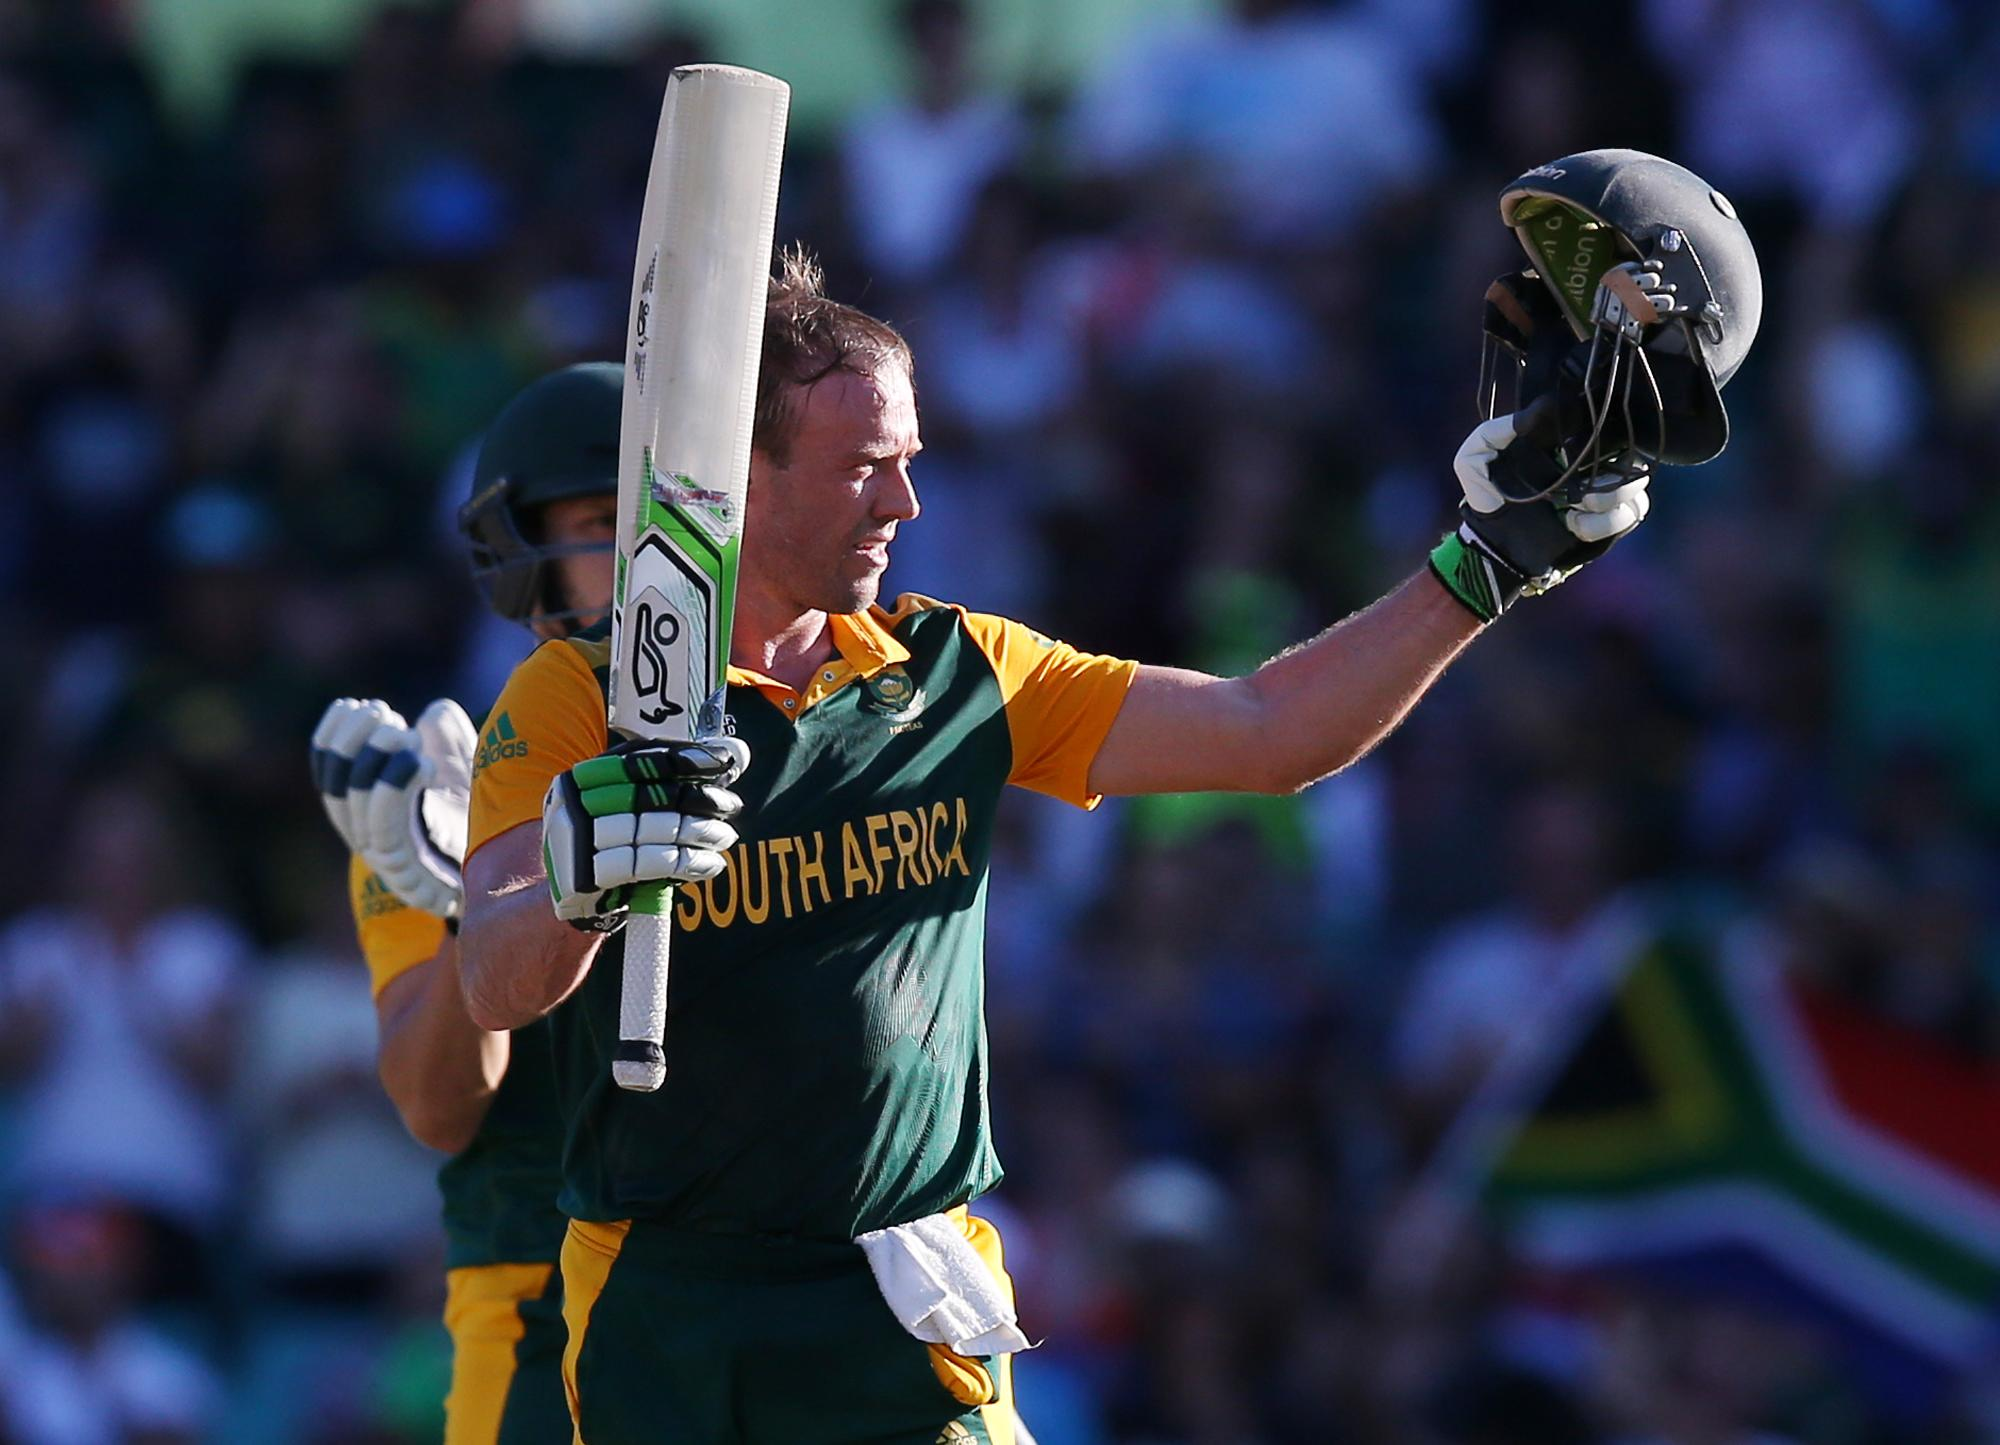 De Villiers expected to score big against Irish in World Cup